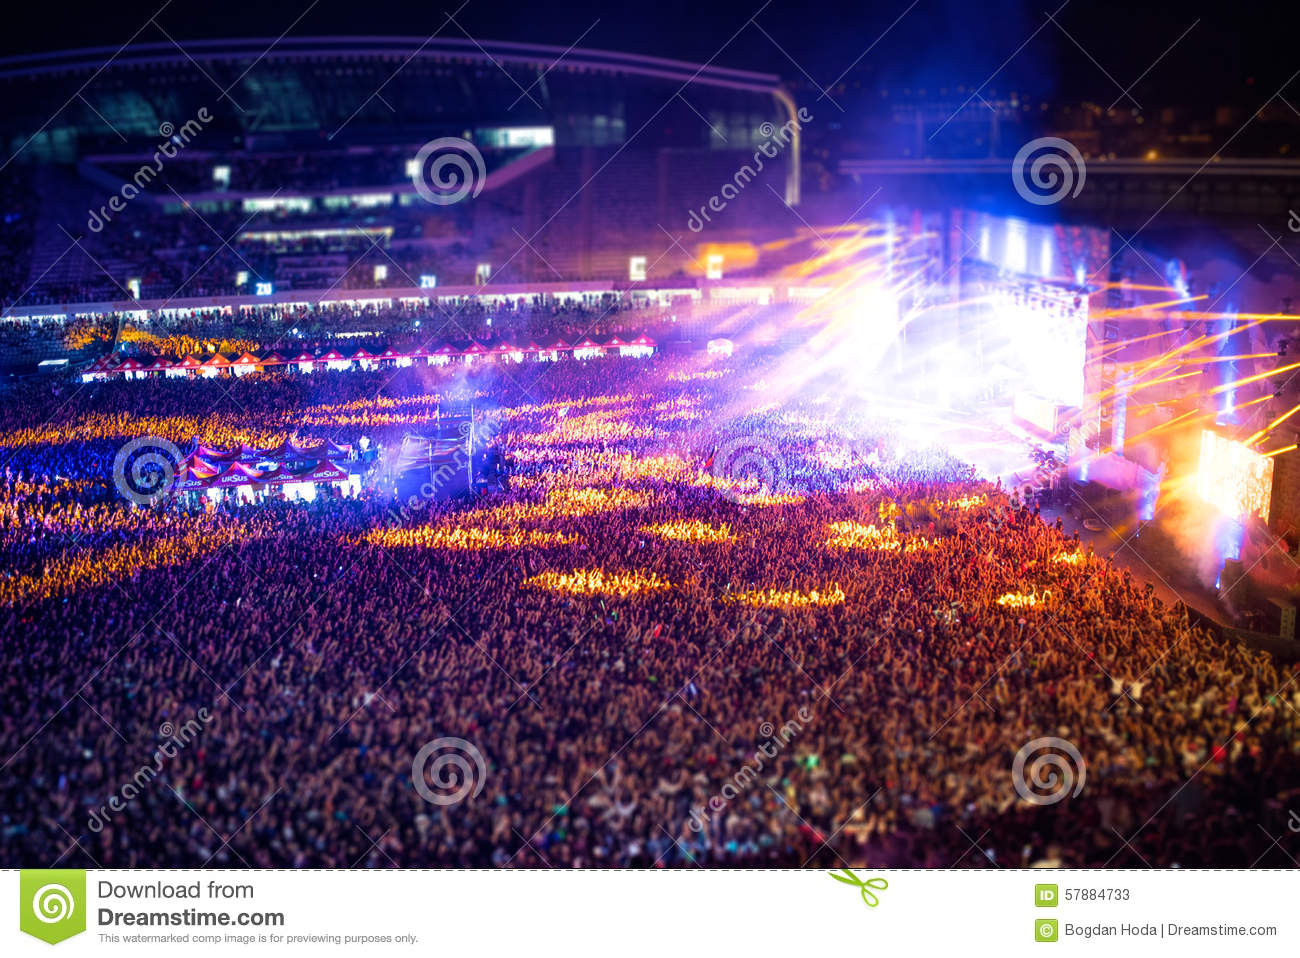 People clapping at night concert, partying and raising hands for the artist on stage. Blurry aerial view of concert crowd